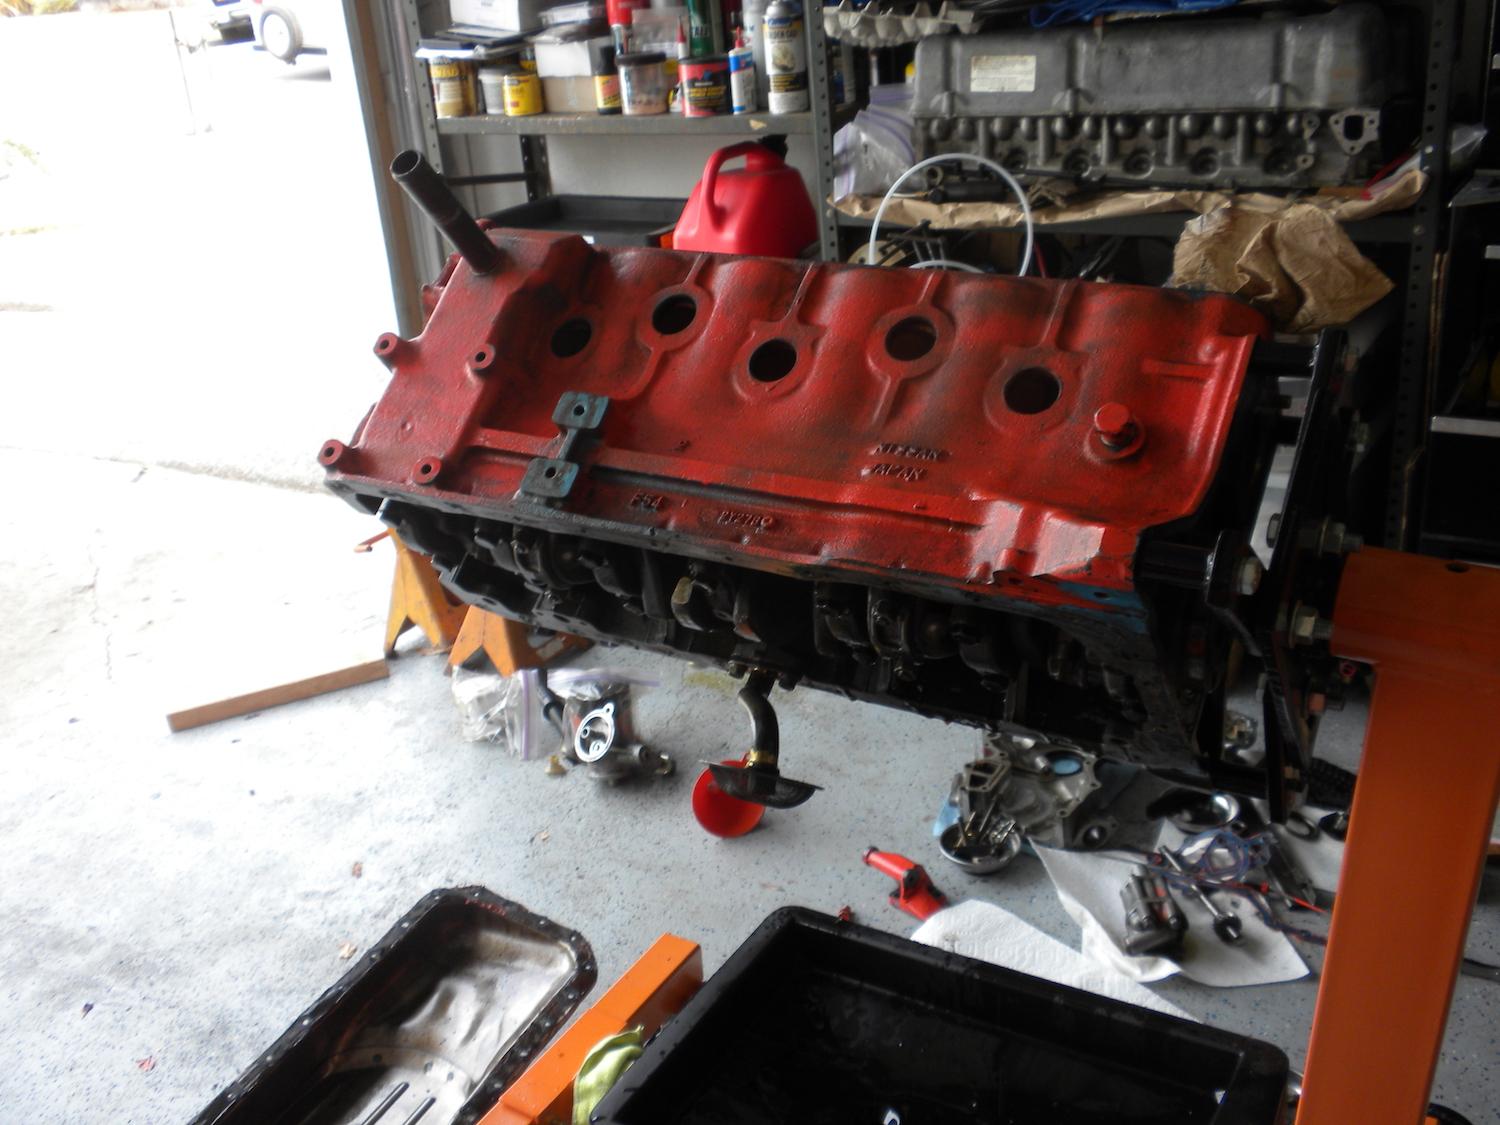 Datsun 240z Engine Block Cleaning small.JPG